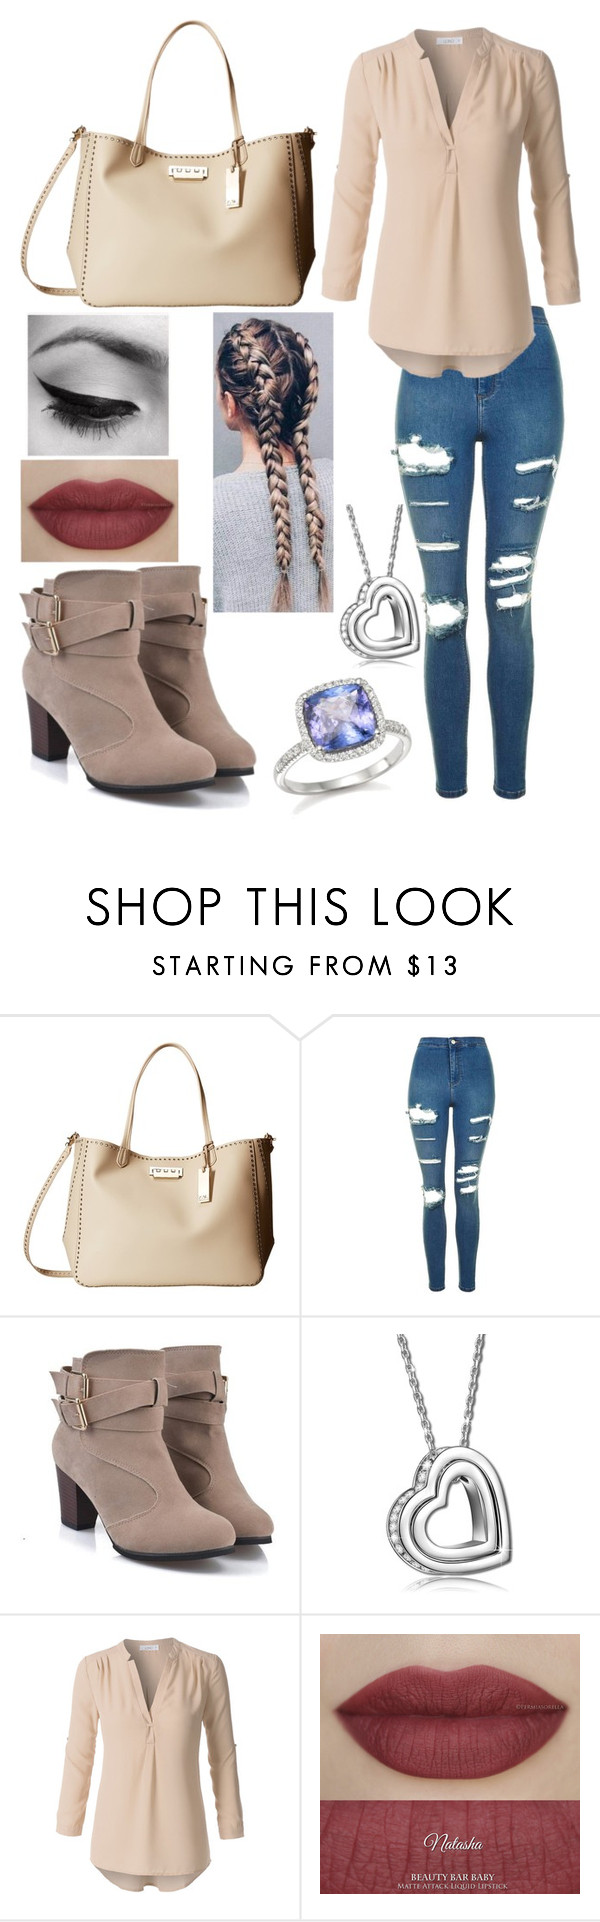 """Design677"" by charlottesheridan ❤ liked on Polyvore featuring ZAC Zac Posen, Topshop and Bloomingdale's"